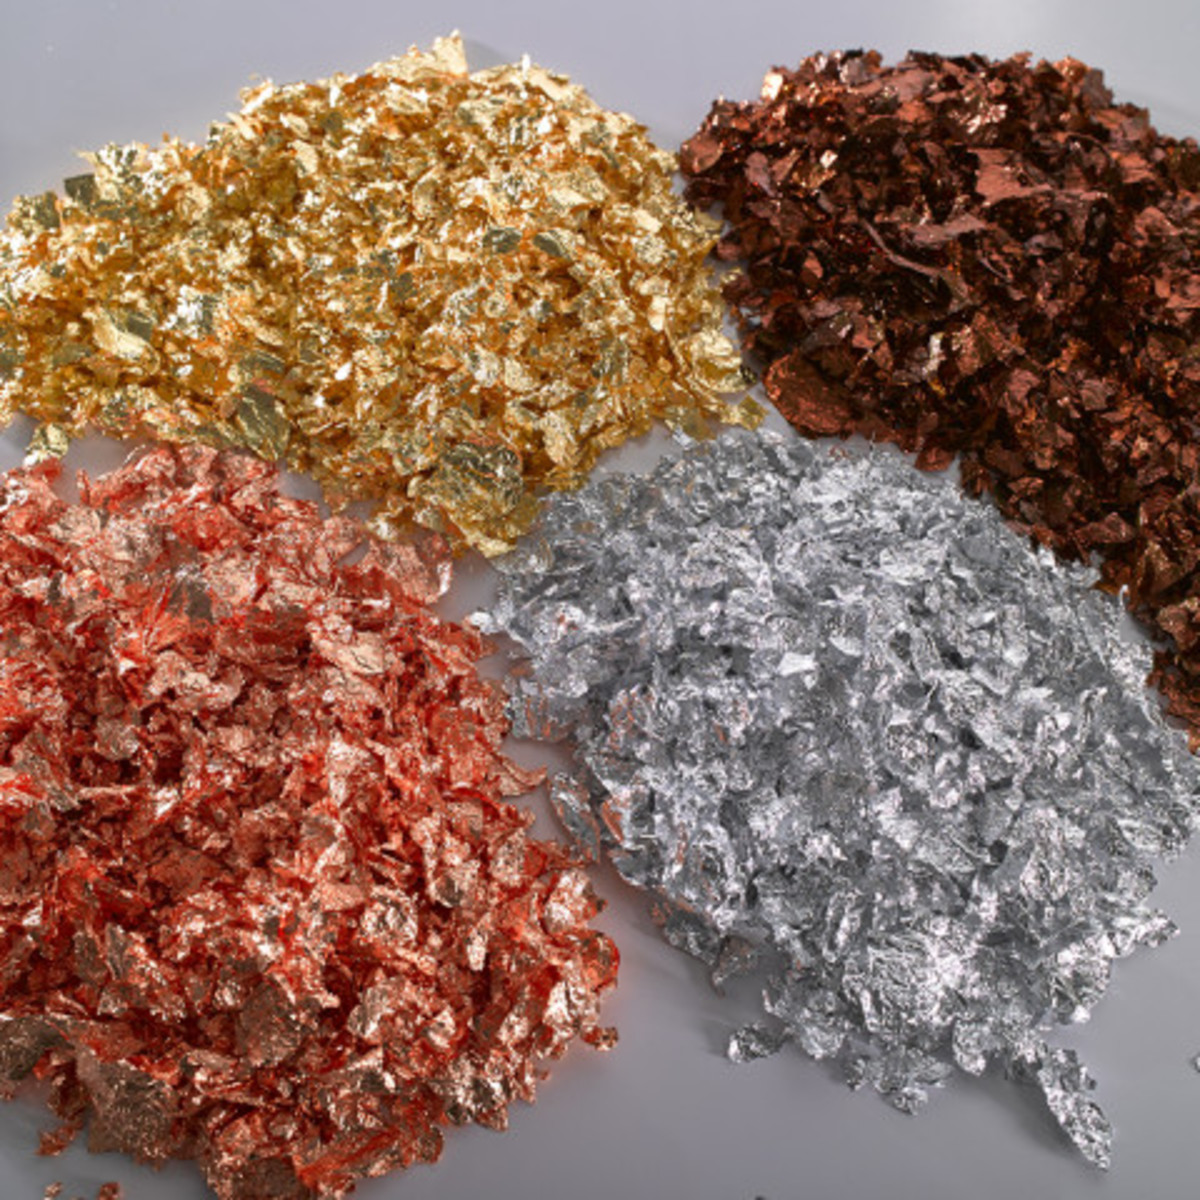 Gilding flakes come in several single colors or premixed combinations